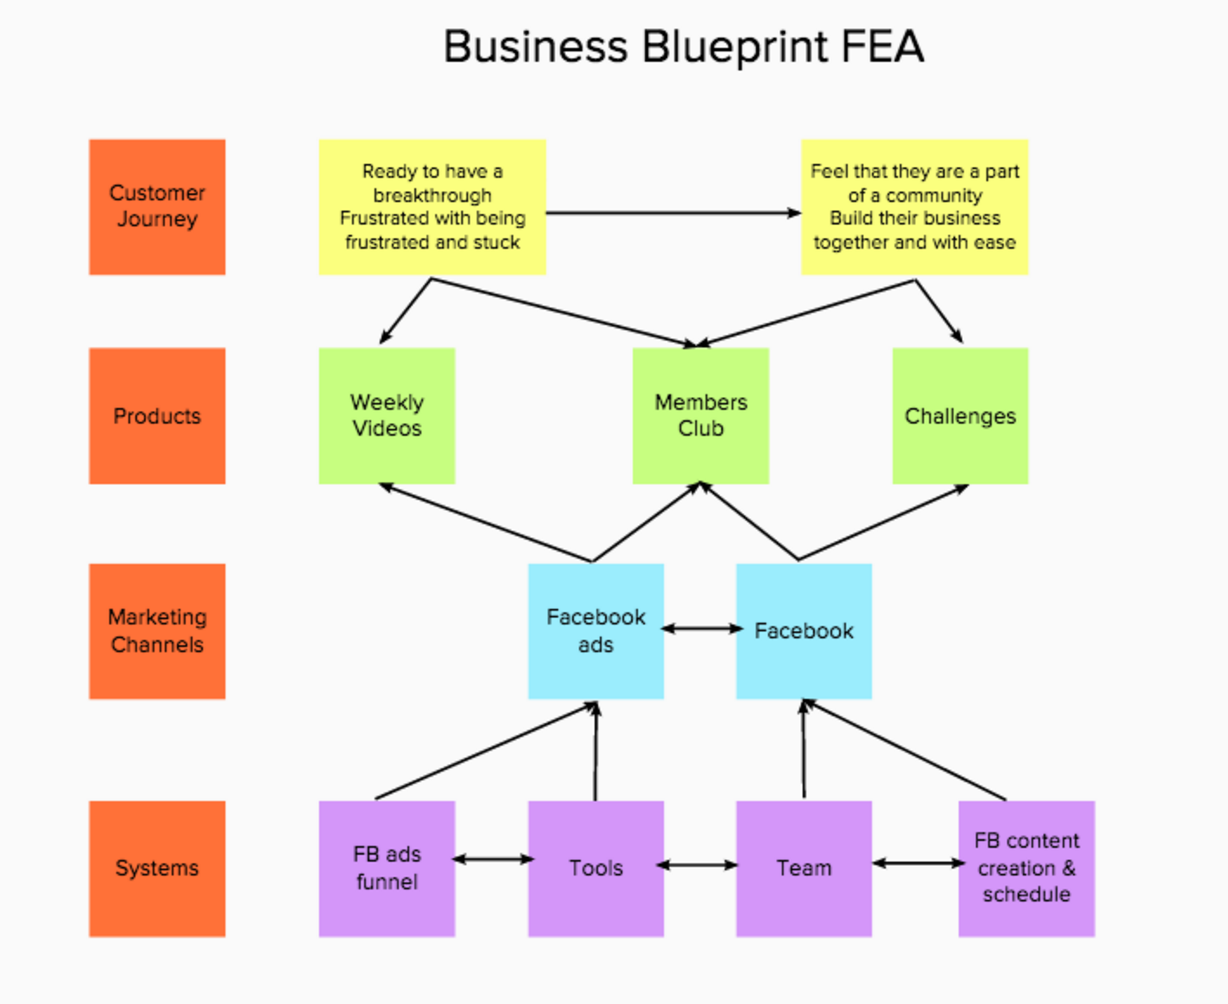 How to create your business blueprint to know what you need to focus fea business blueprint screen shot 2016 04 04 at 155716 malvernweather Choice Image